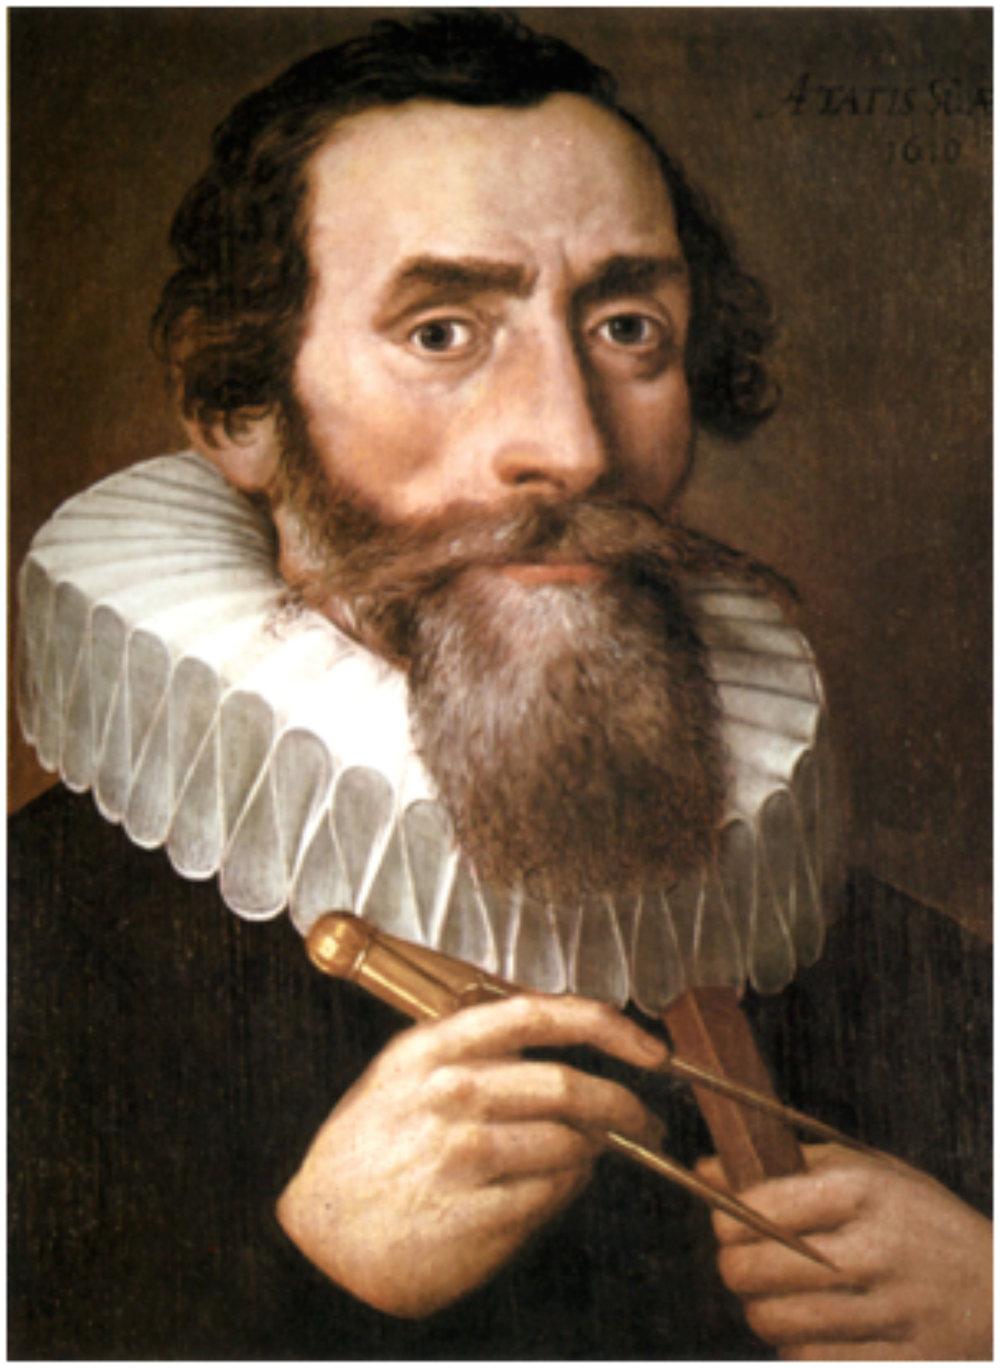 Johannes Kepler 1571 -1630.    Painted by an unknown painter in 1610.   Copy of a lost original from 1610 in the Benedictine monastery in Kremsmünster   PD-Art    Kepler was a German mathematician and optician, known for his laws of planetary motion, based on his works Astronomia nova, Harmonices Mundi, and Epitome of Copernican Astronomy. These works also provided one of the foundations for Isaac Newton's theory of universal gravitation.